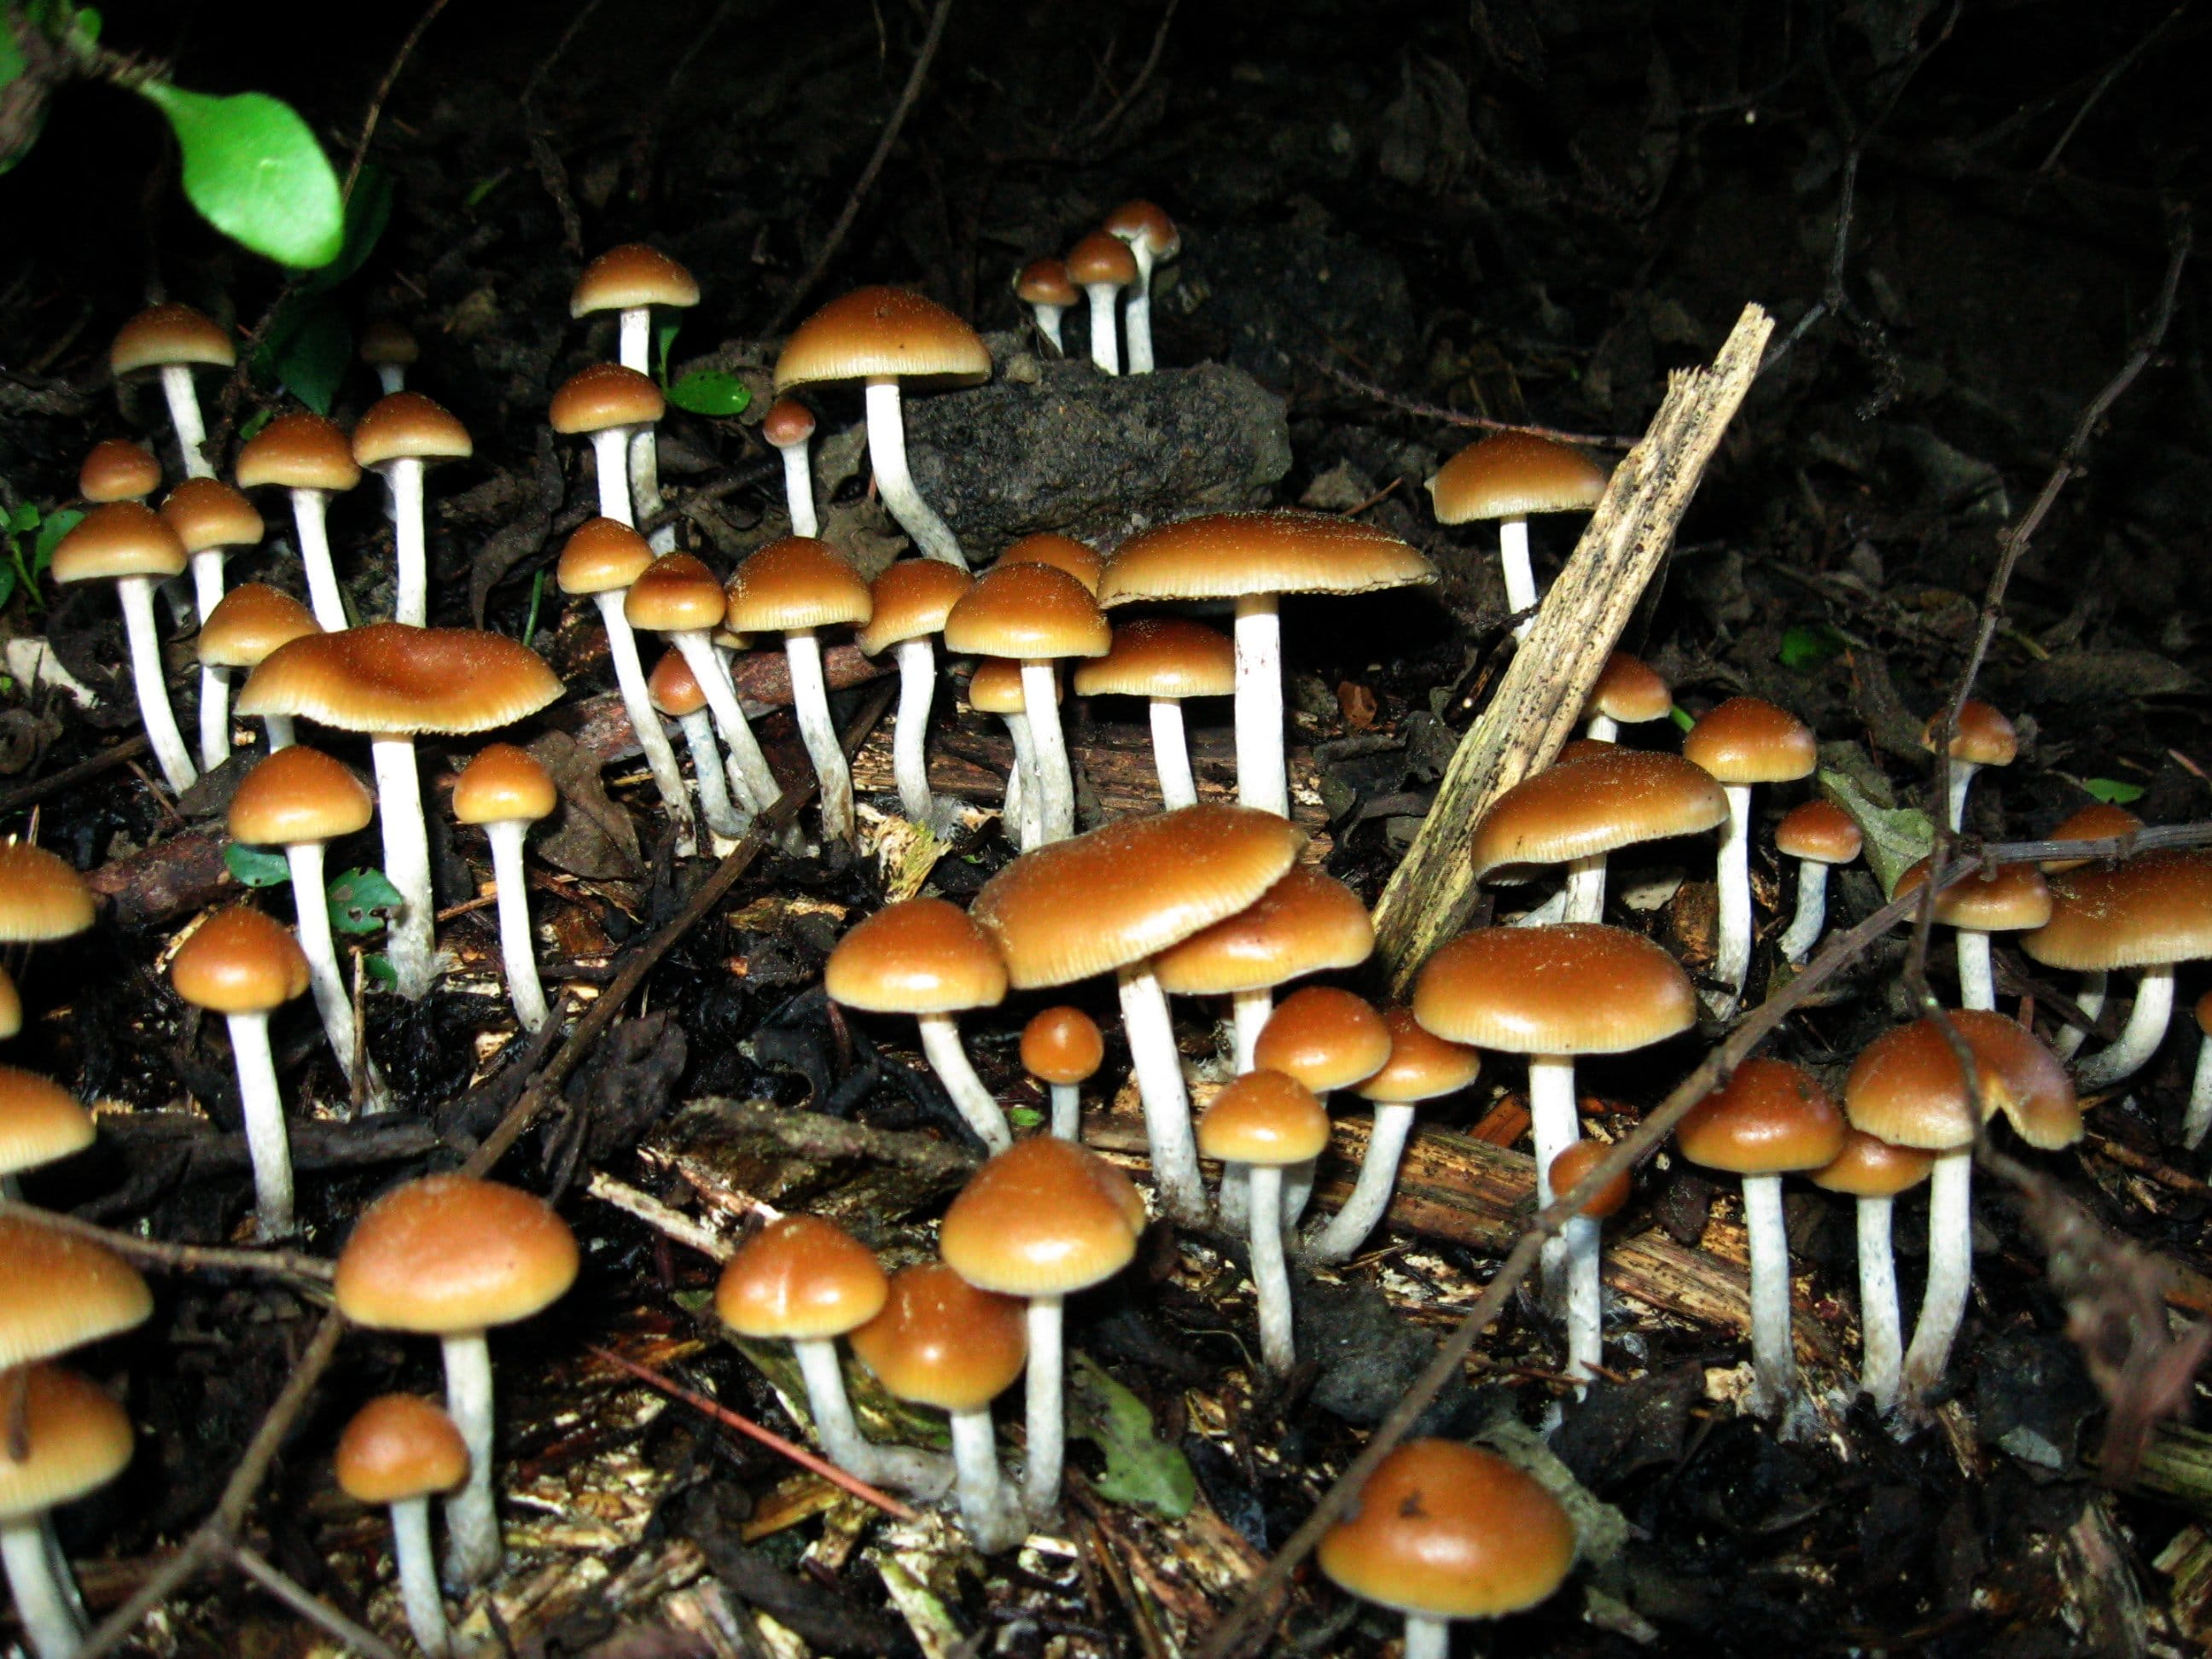 How to Change Your Personality: Research Shows that Psilocybin Can Improve Your Outlook on Life